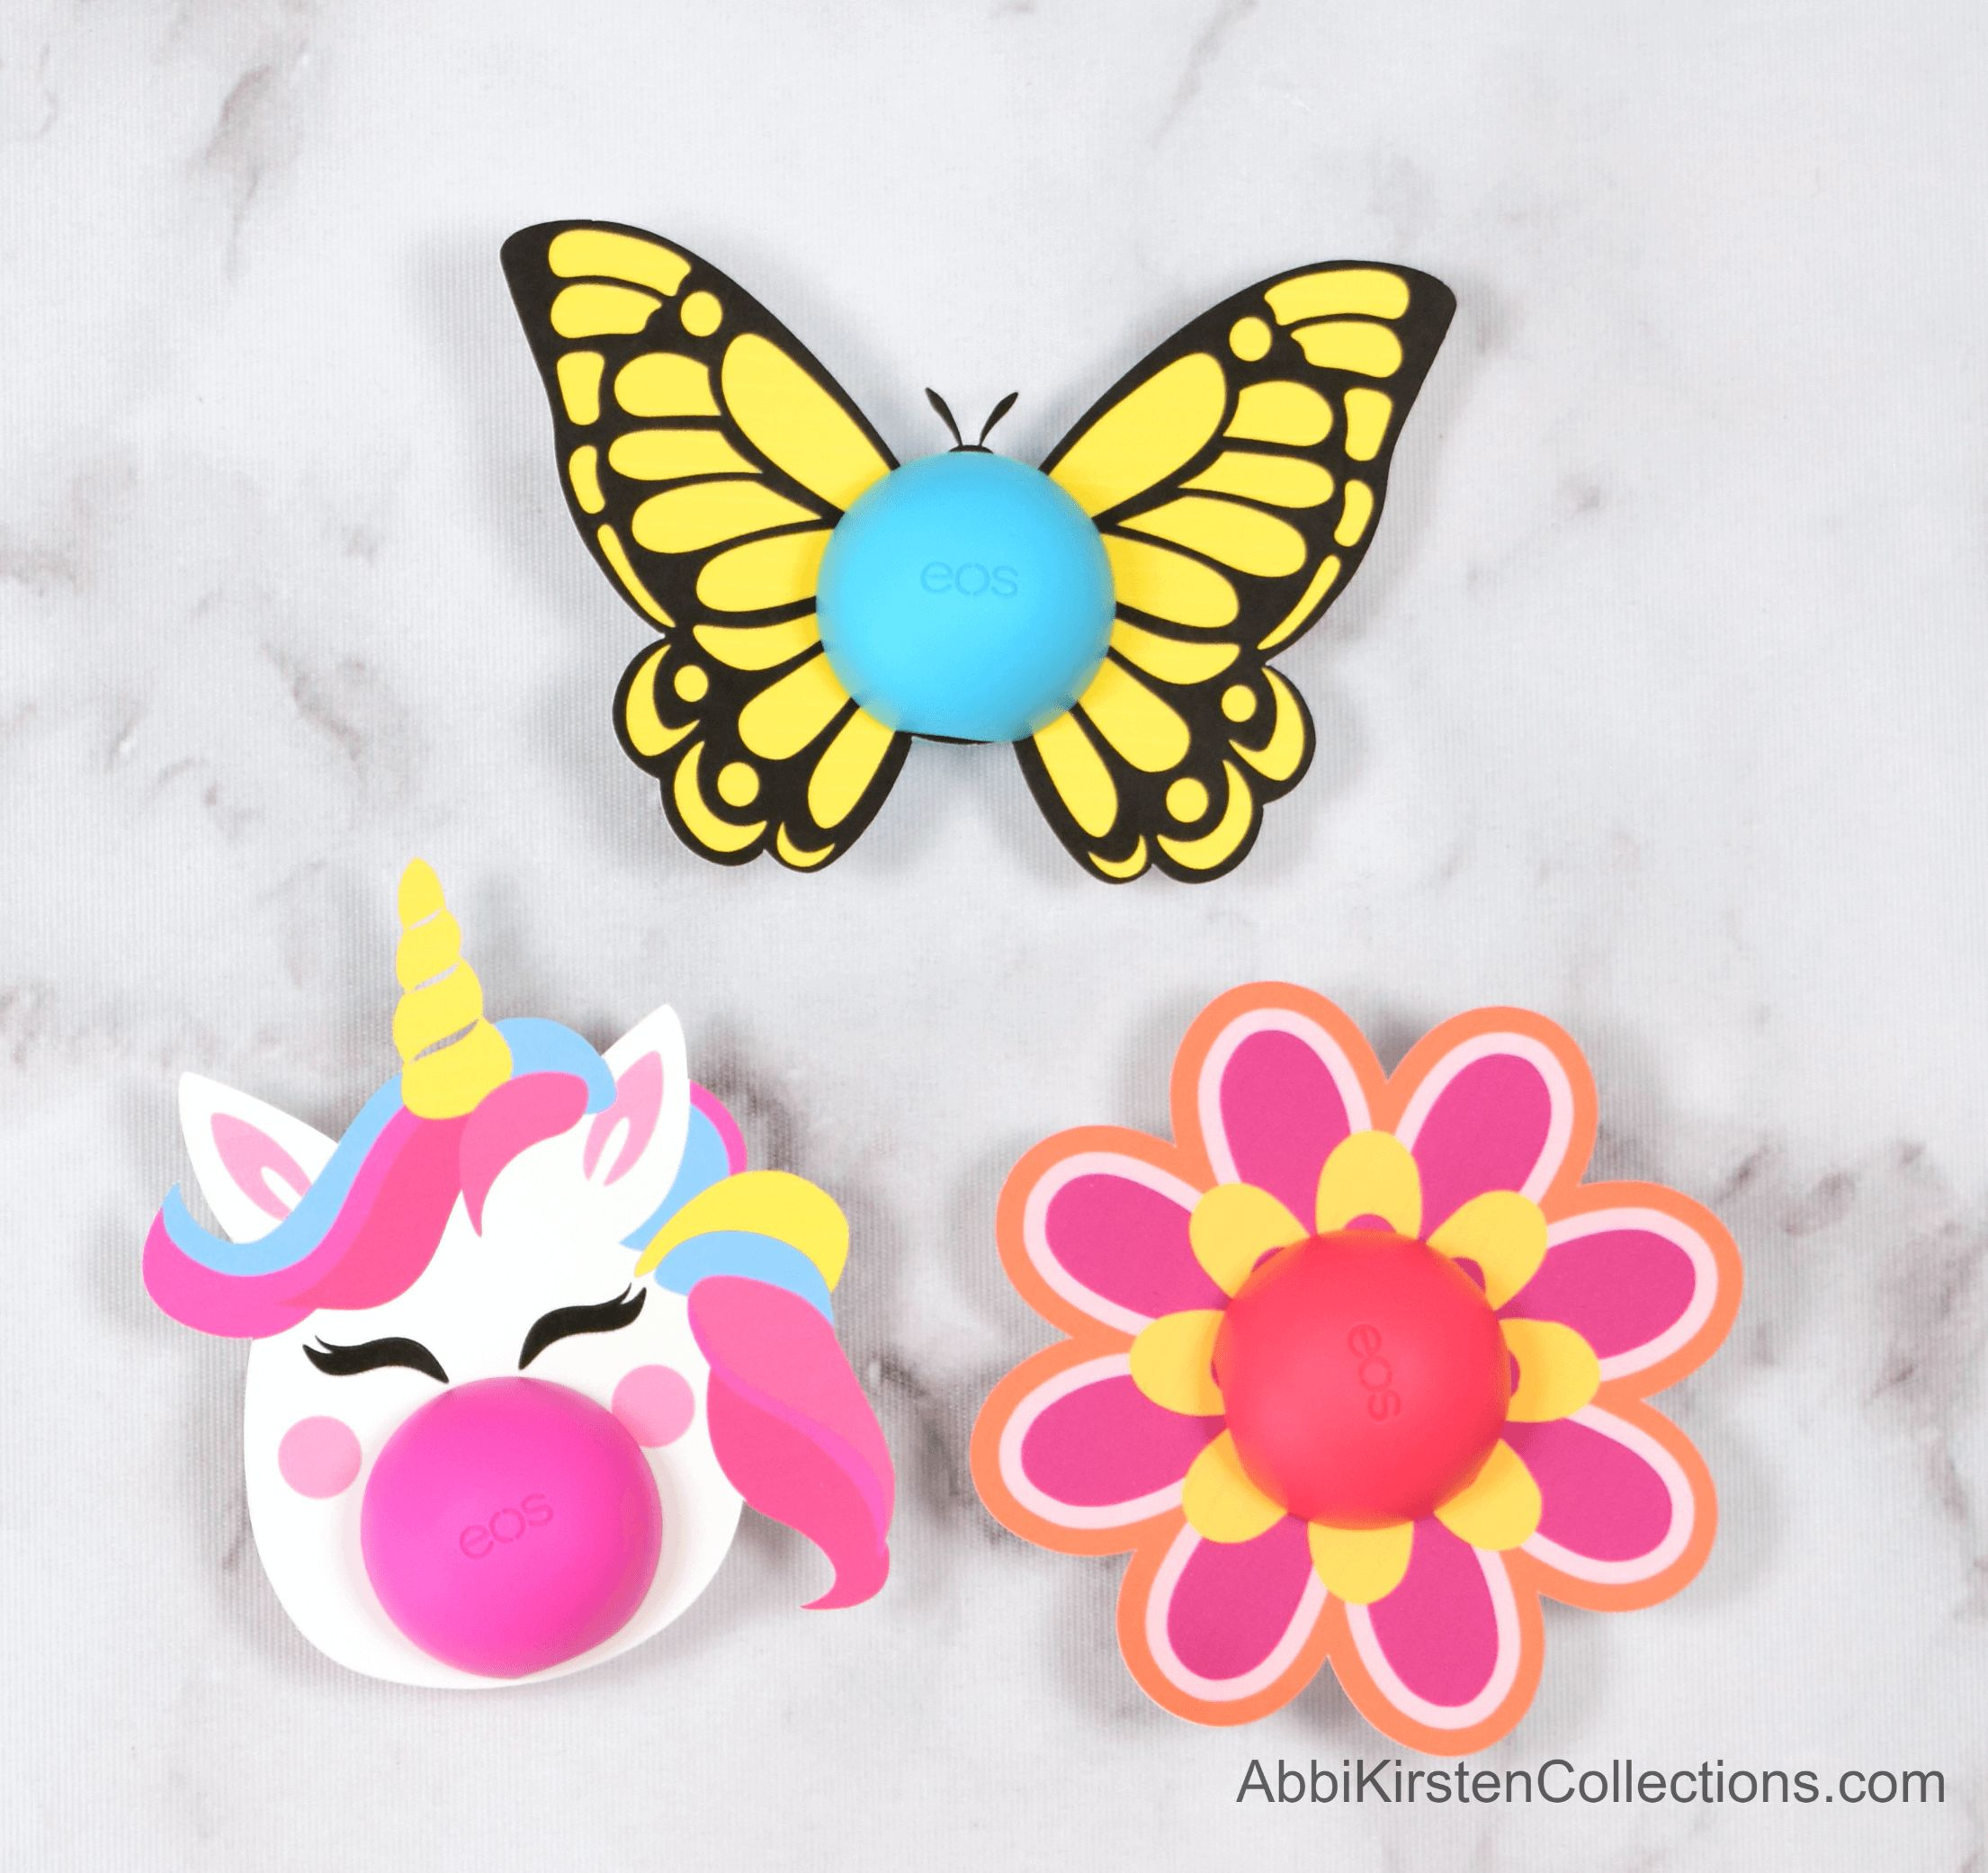 Free Eos Lip Balm Printables – Unicorn, Flower, and Butterfly Templates